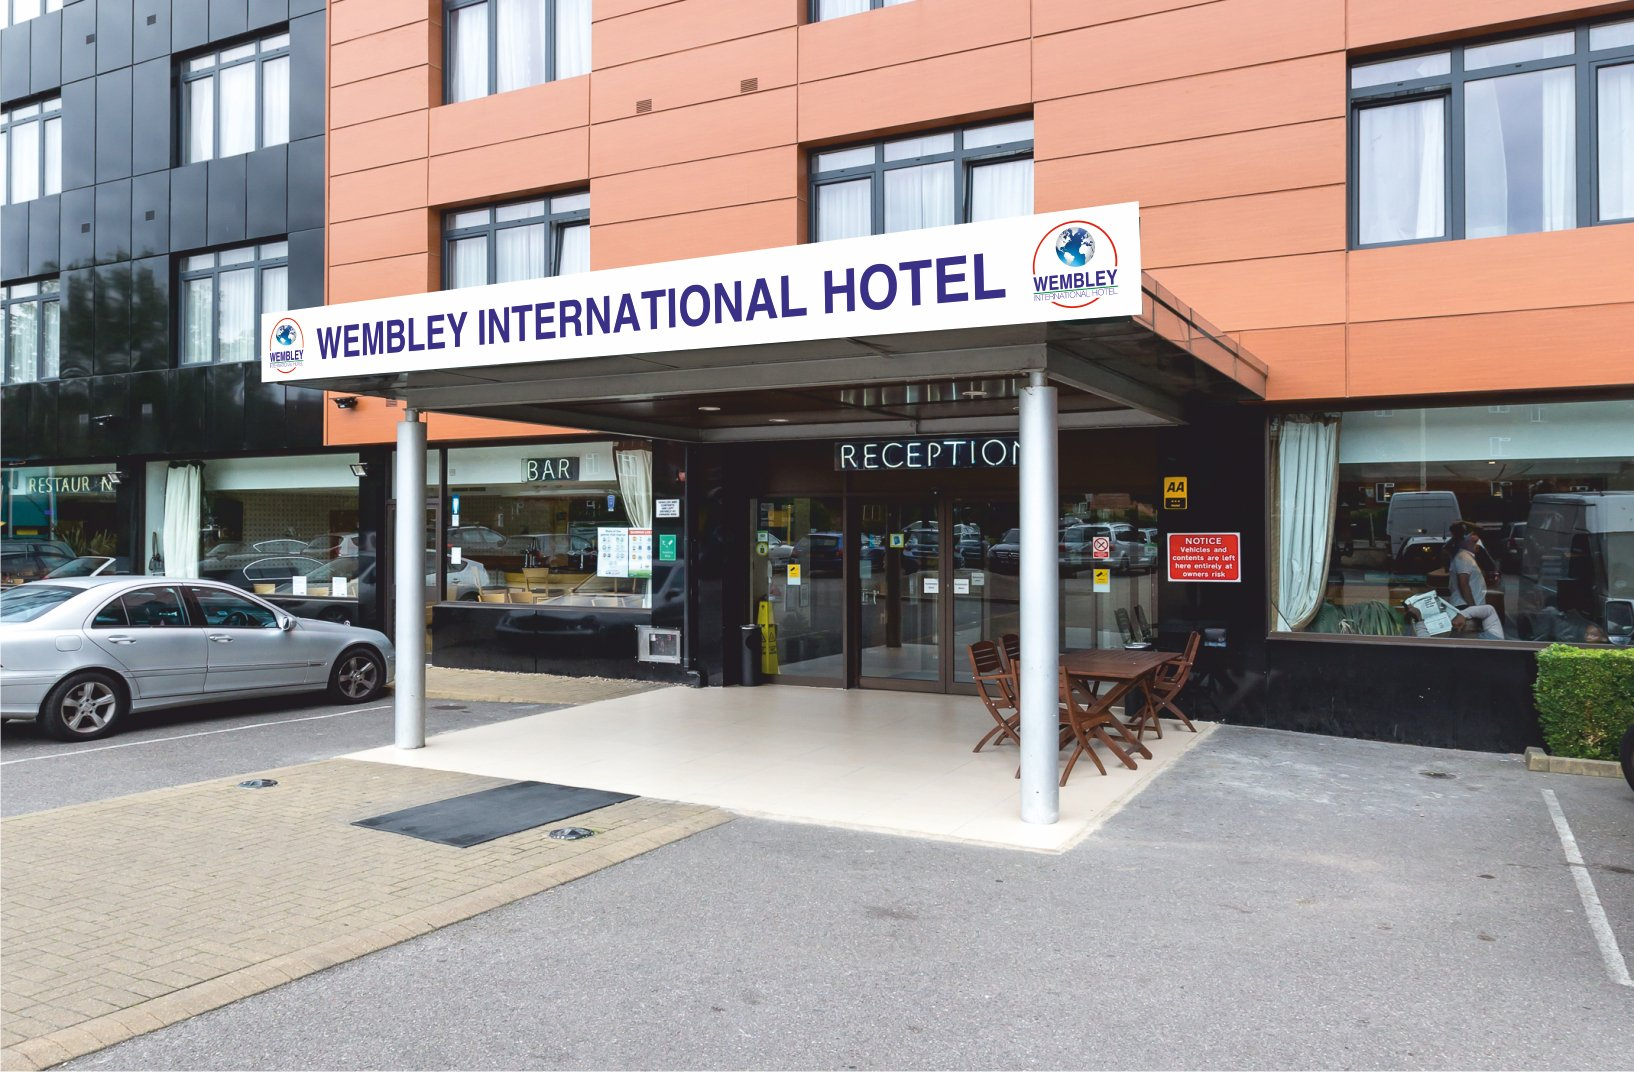 Wembley International Hotel